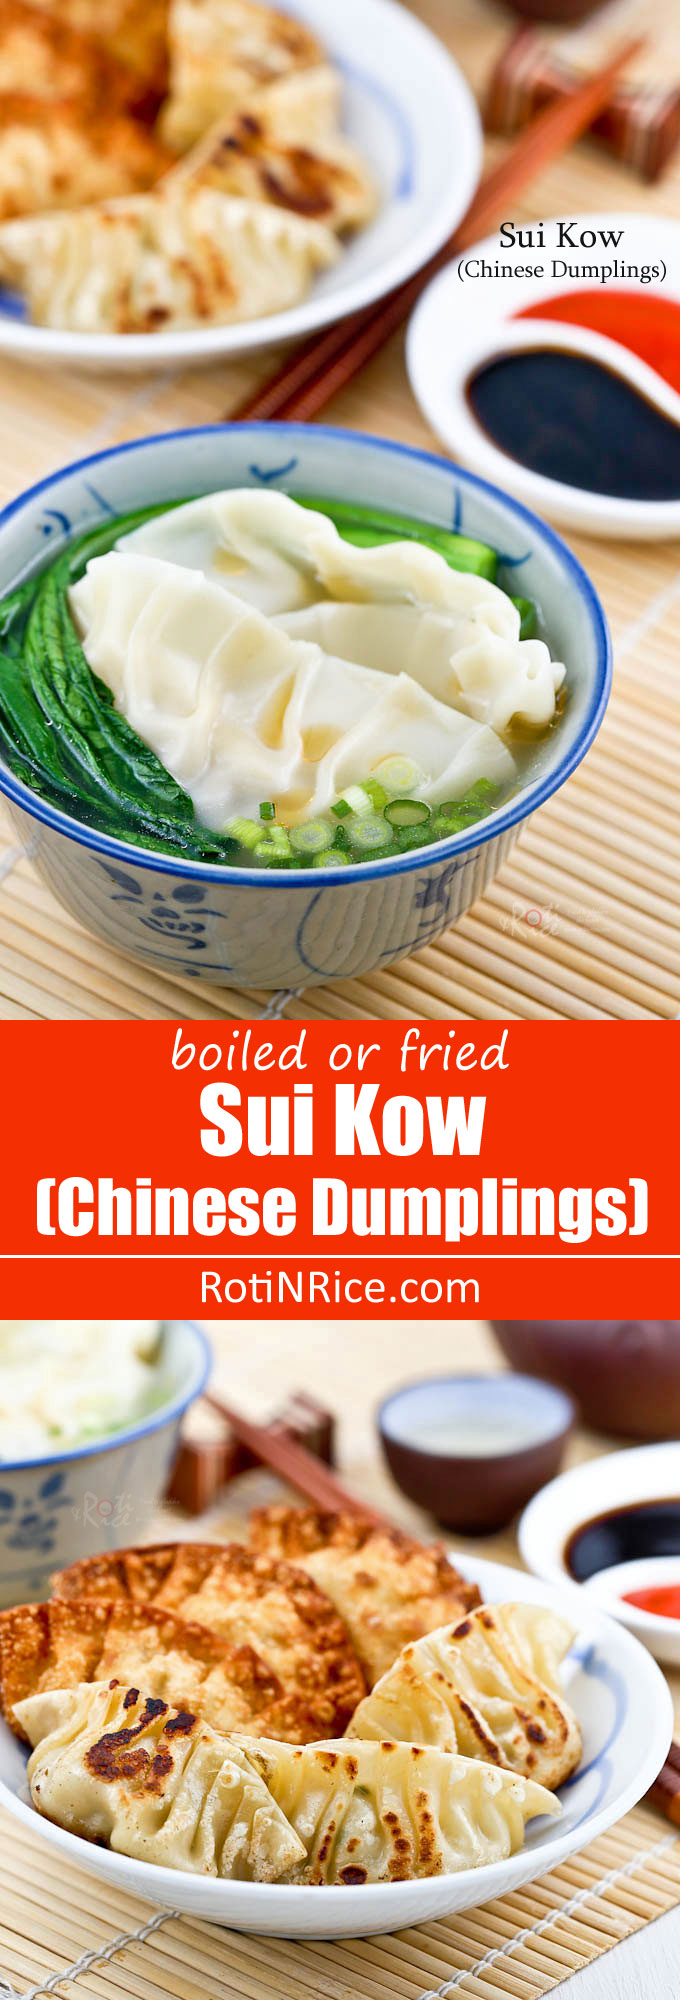 Sui Kow (Chinese Dumplings) are delicious fan shaped dumplings served in broth. They can also be deep fried or pan fried and steamed as pot stickers. | RotiNRice.com